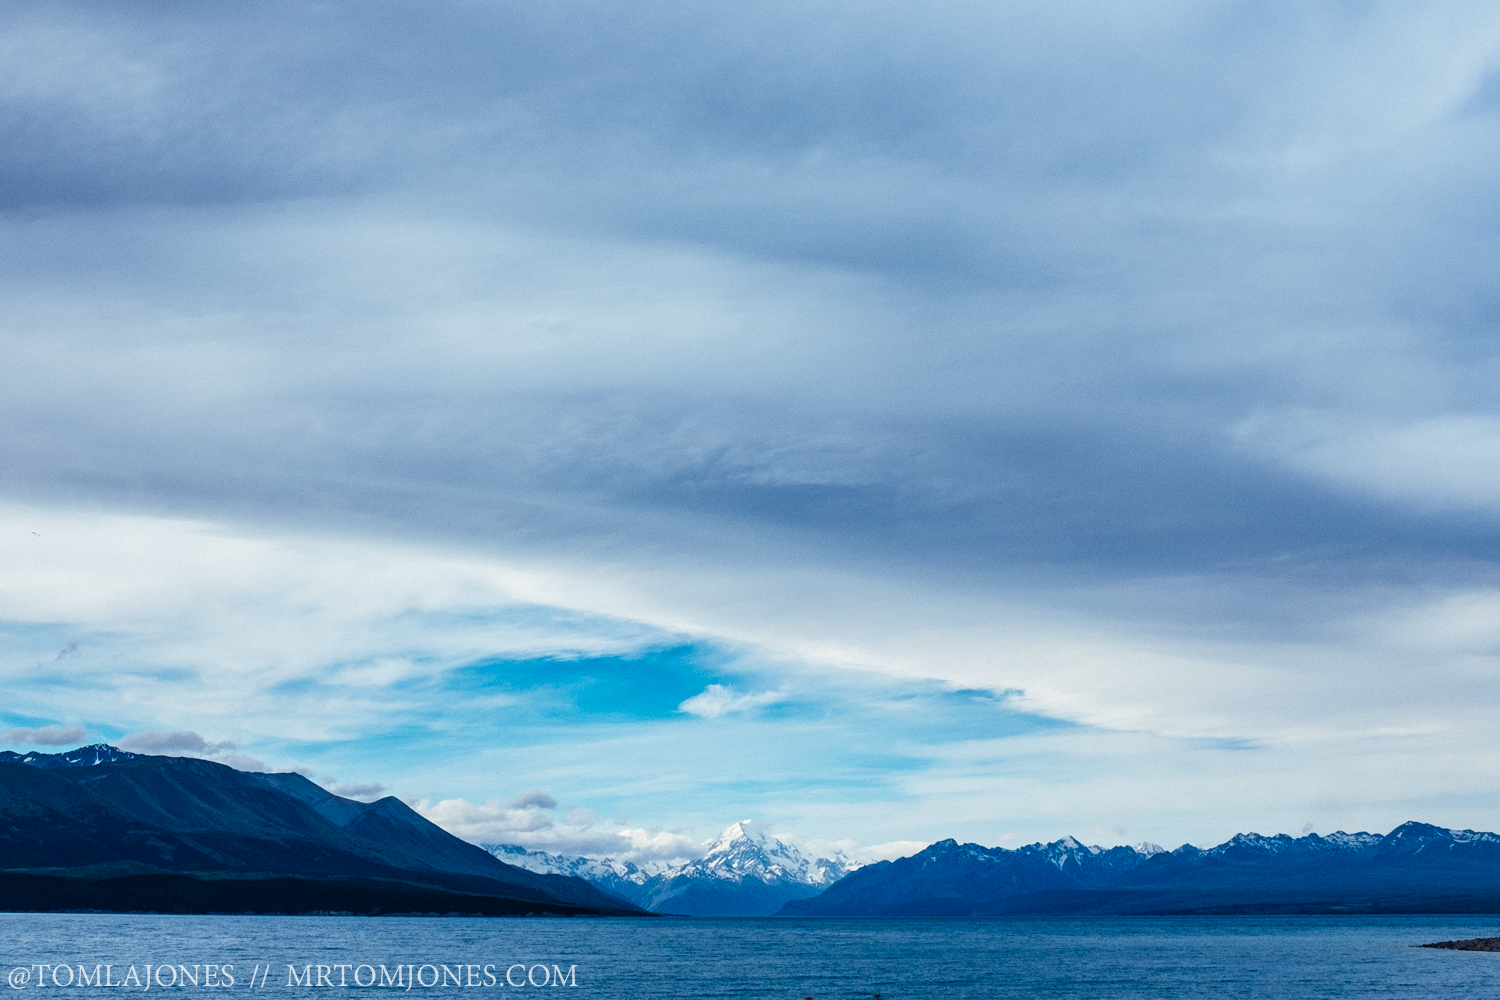 Mt Cook, New Zealand's tallest mountain.